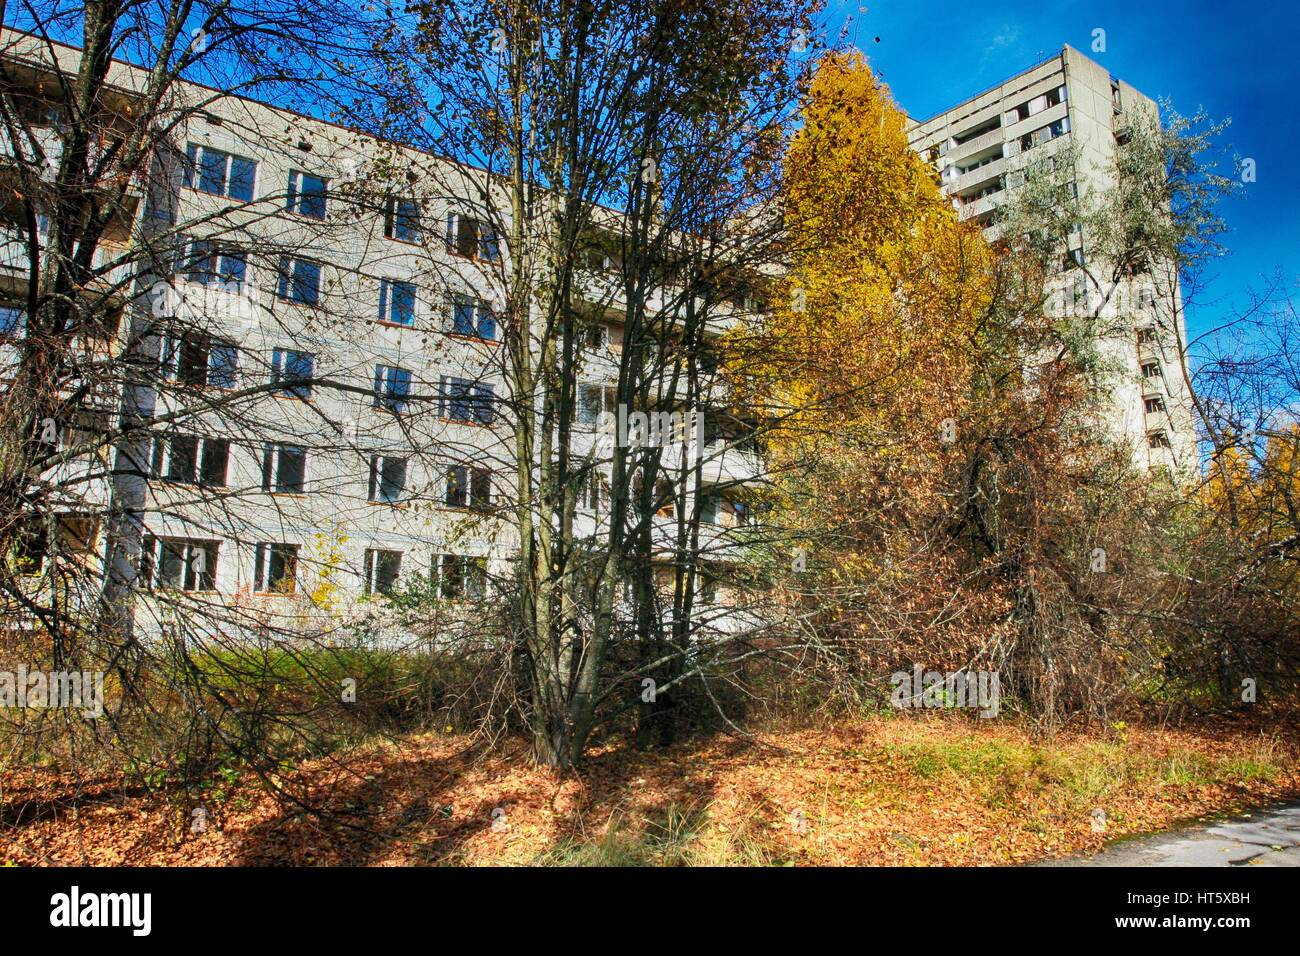 Pripyat – abandoned building taken over by vegetation after Chernobyl disaster - Stock Image